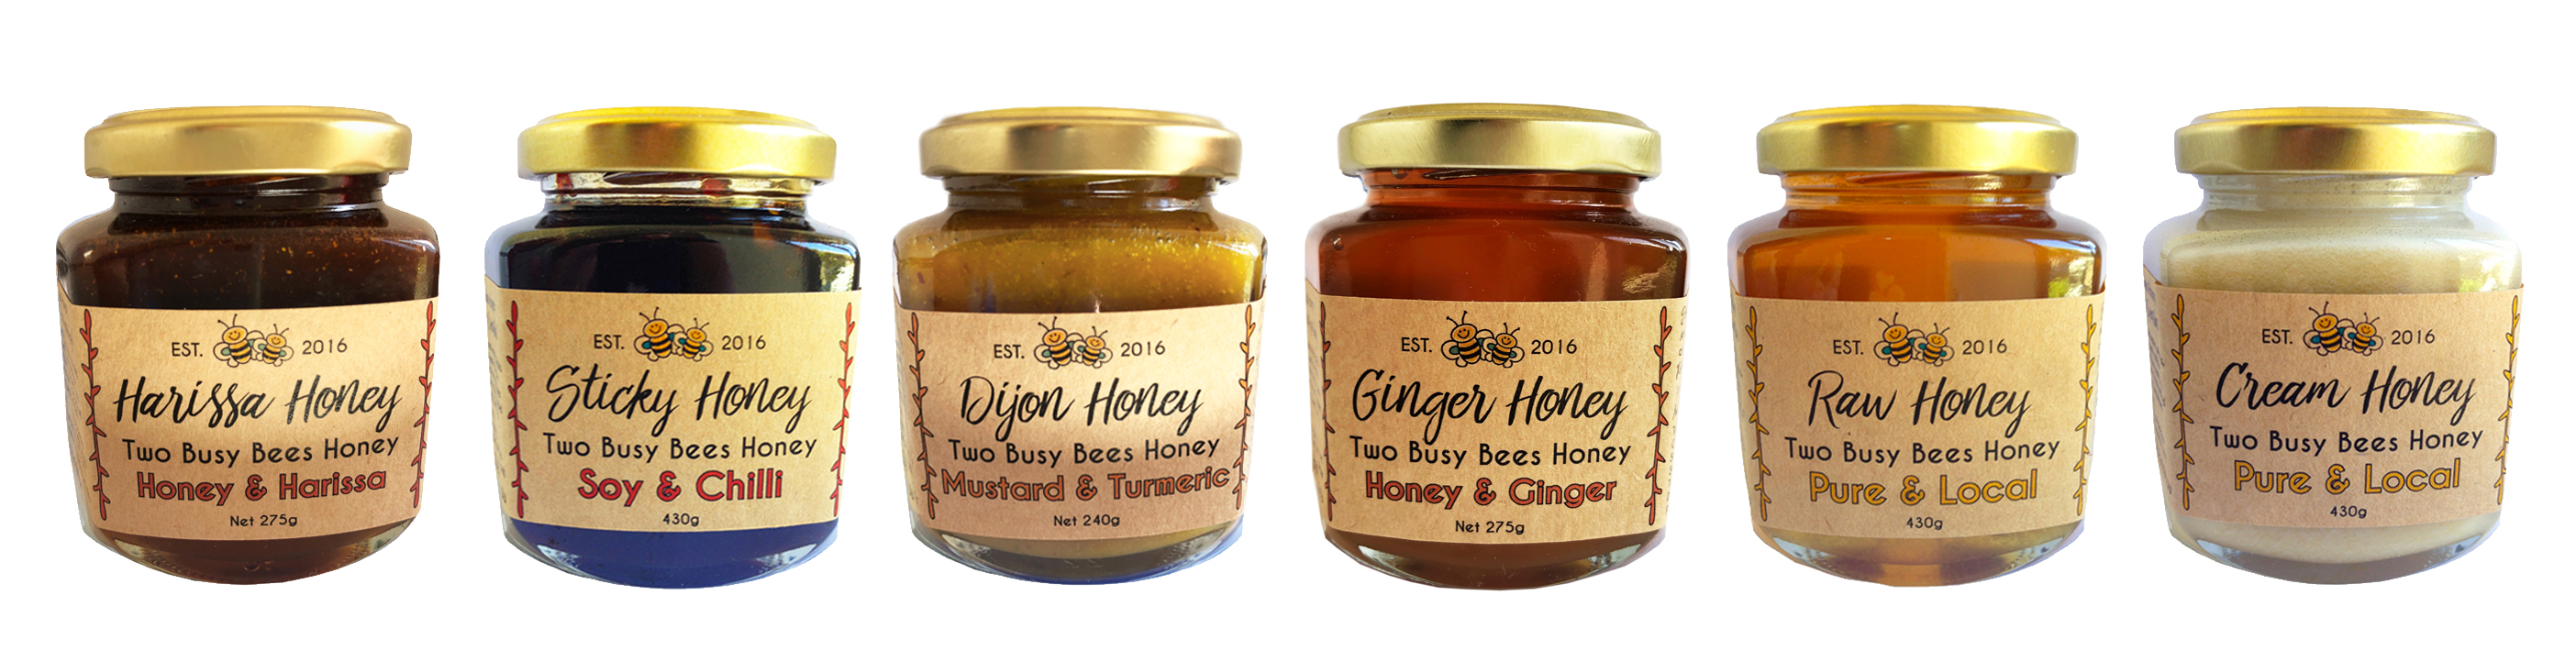 Two Busy Bees Honey banner image